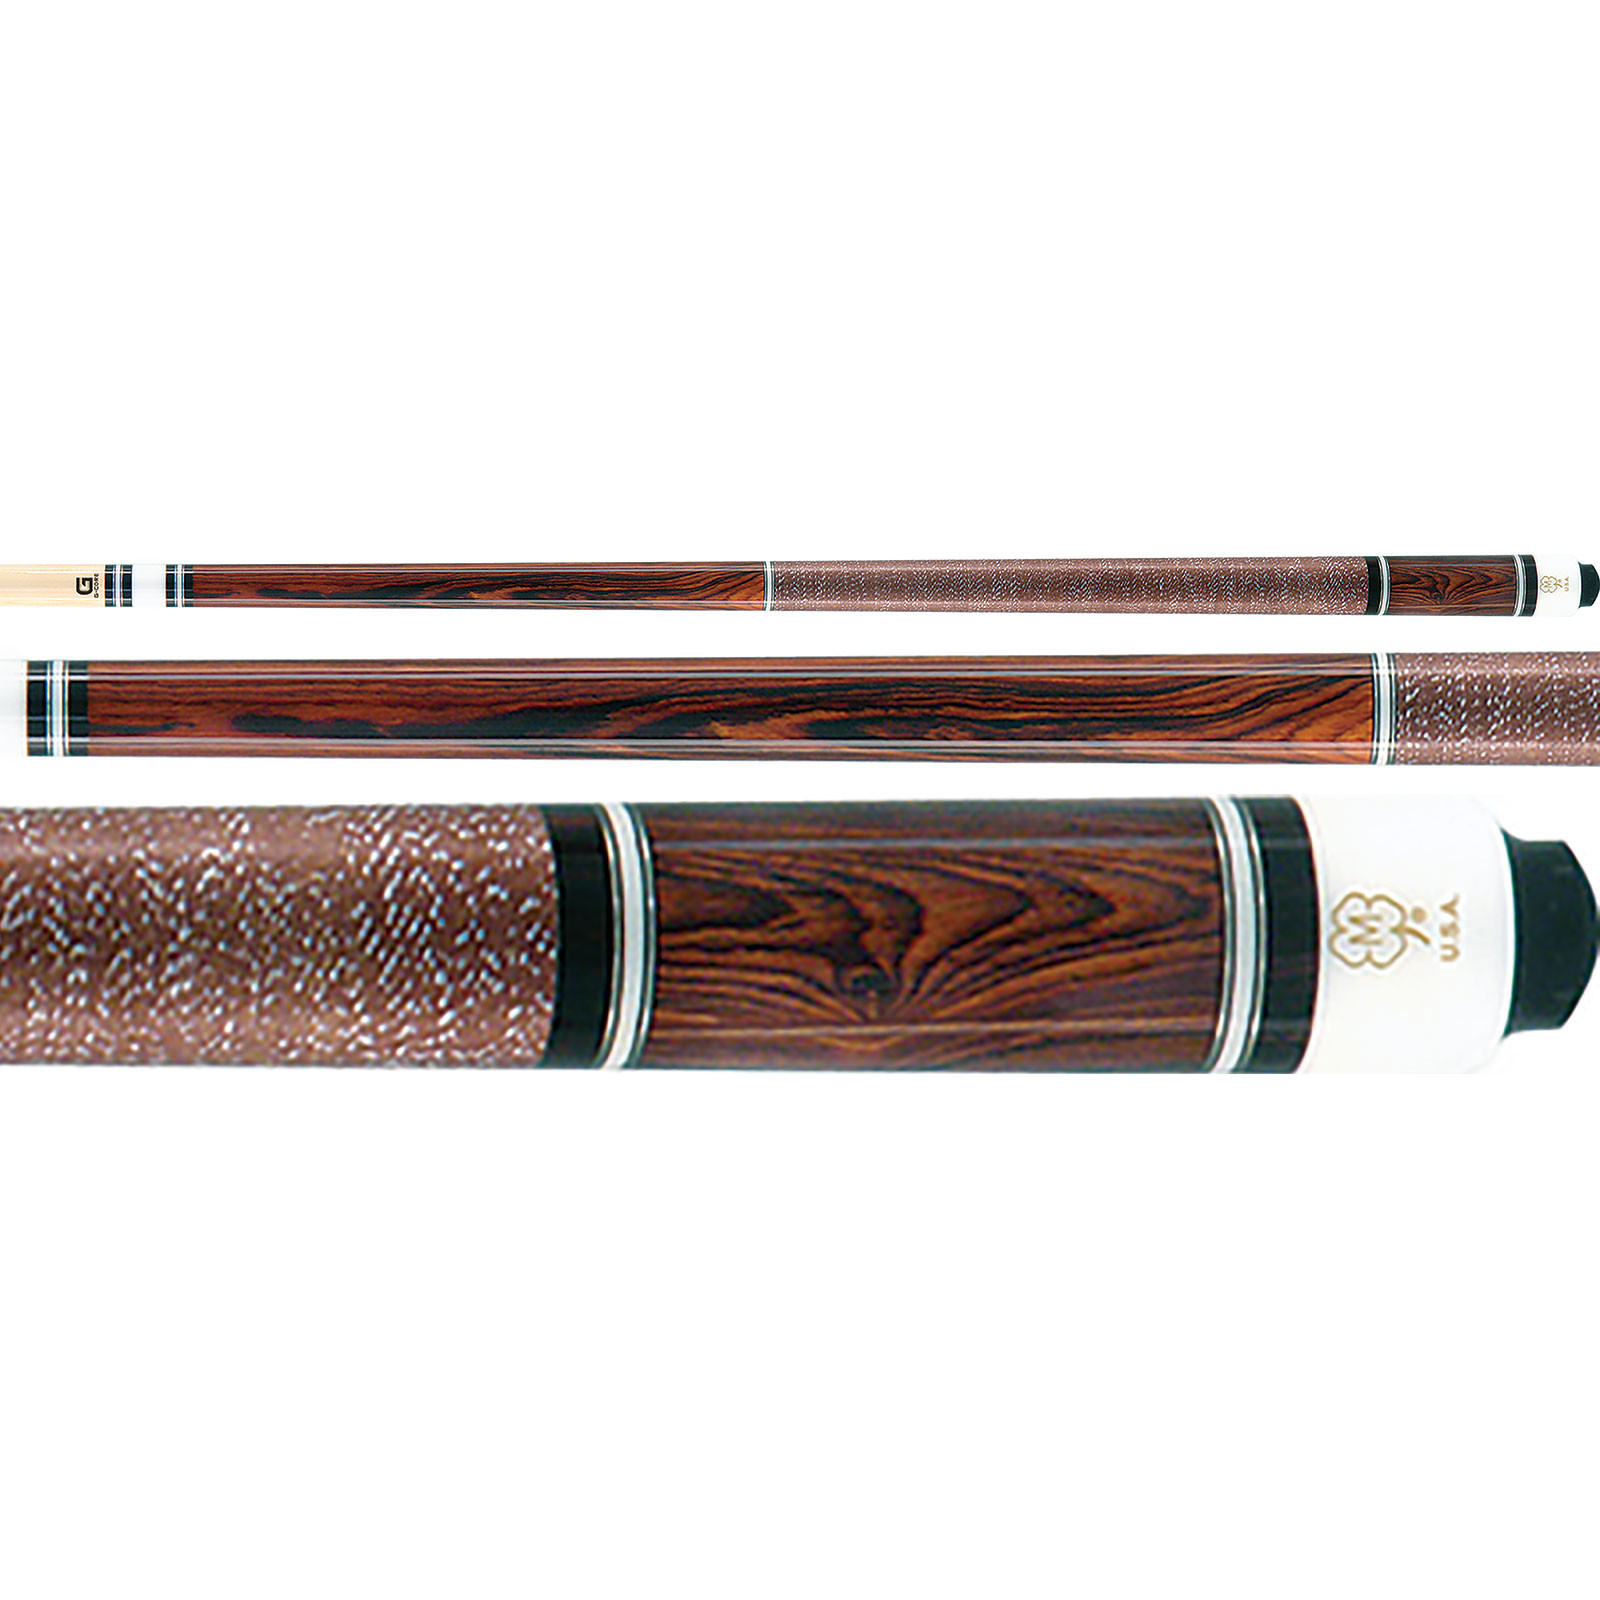 Mcdermott G223 G Series Cocobolo Pool Cue